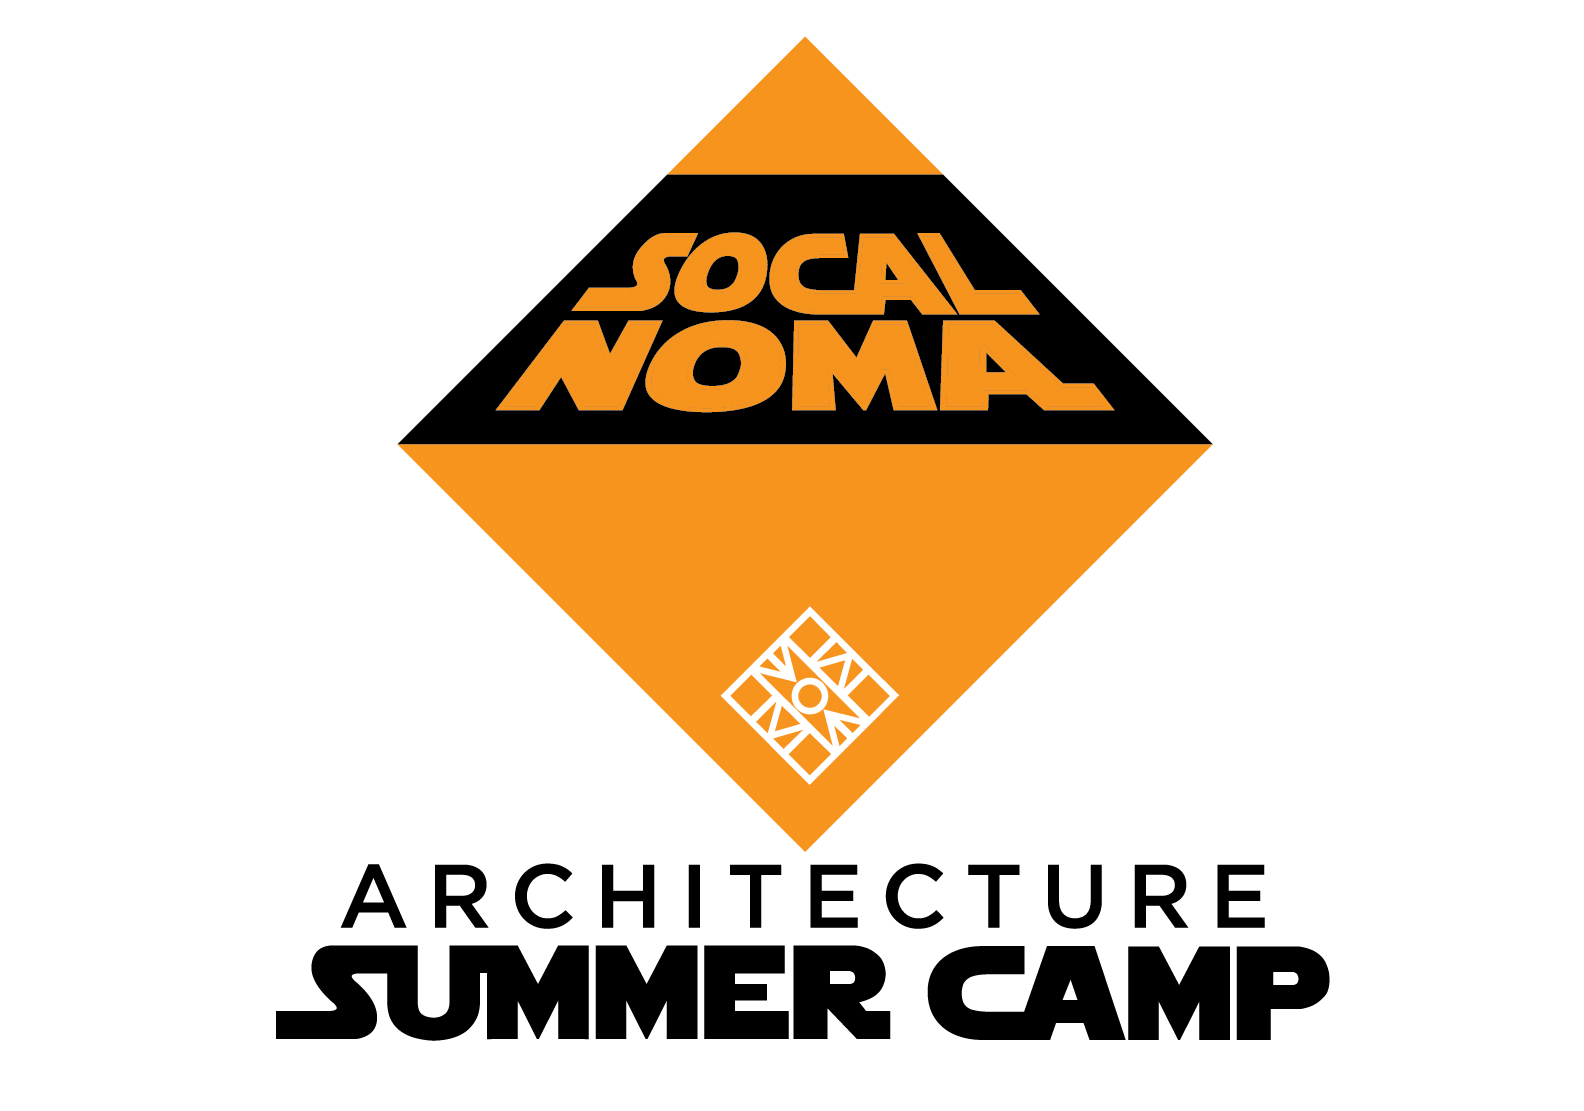 Socal NOMA Summer Camp logo